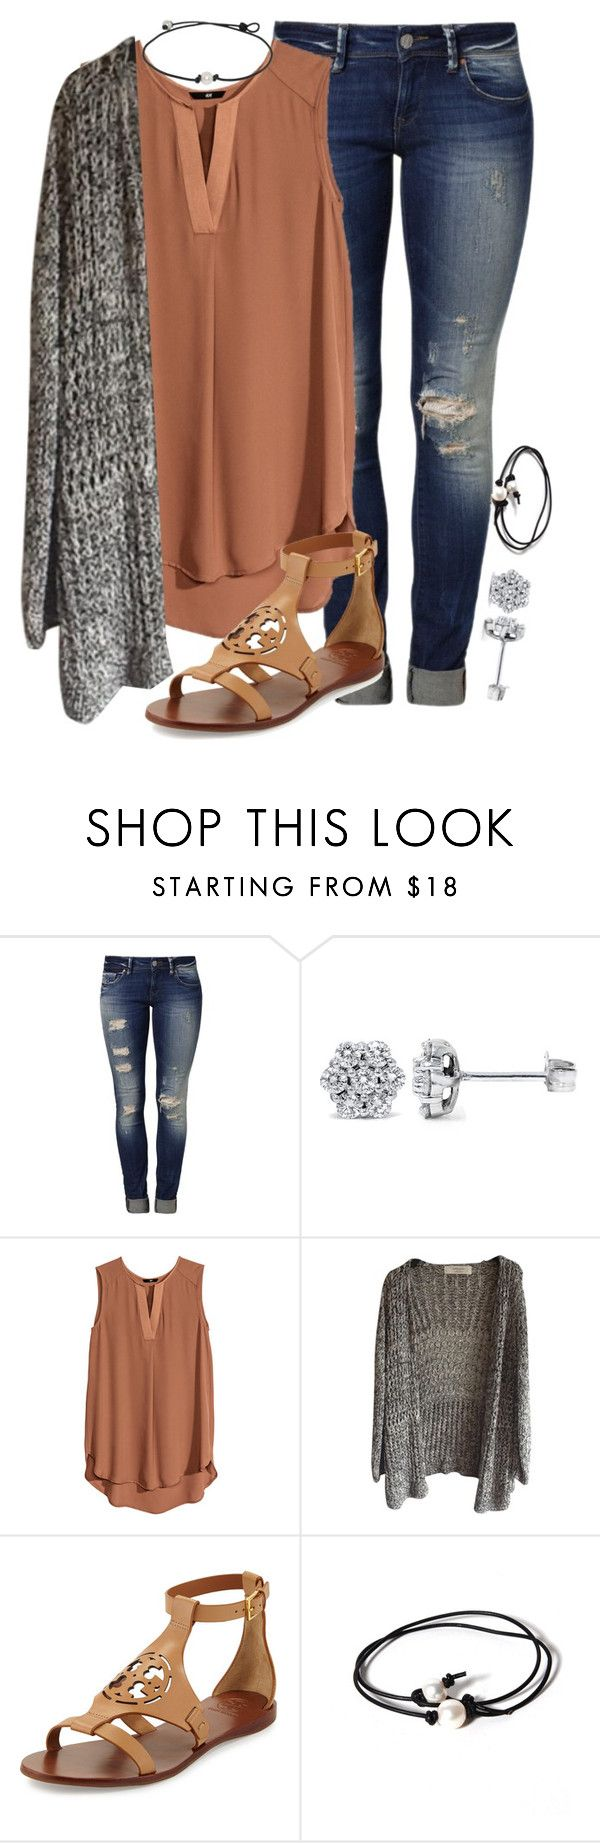 """AUDITION :)))"" by lydiamorrison ❤ liked on Polyvore featuring Mavi, H&M, Tory Burch and Joie"